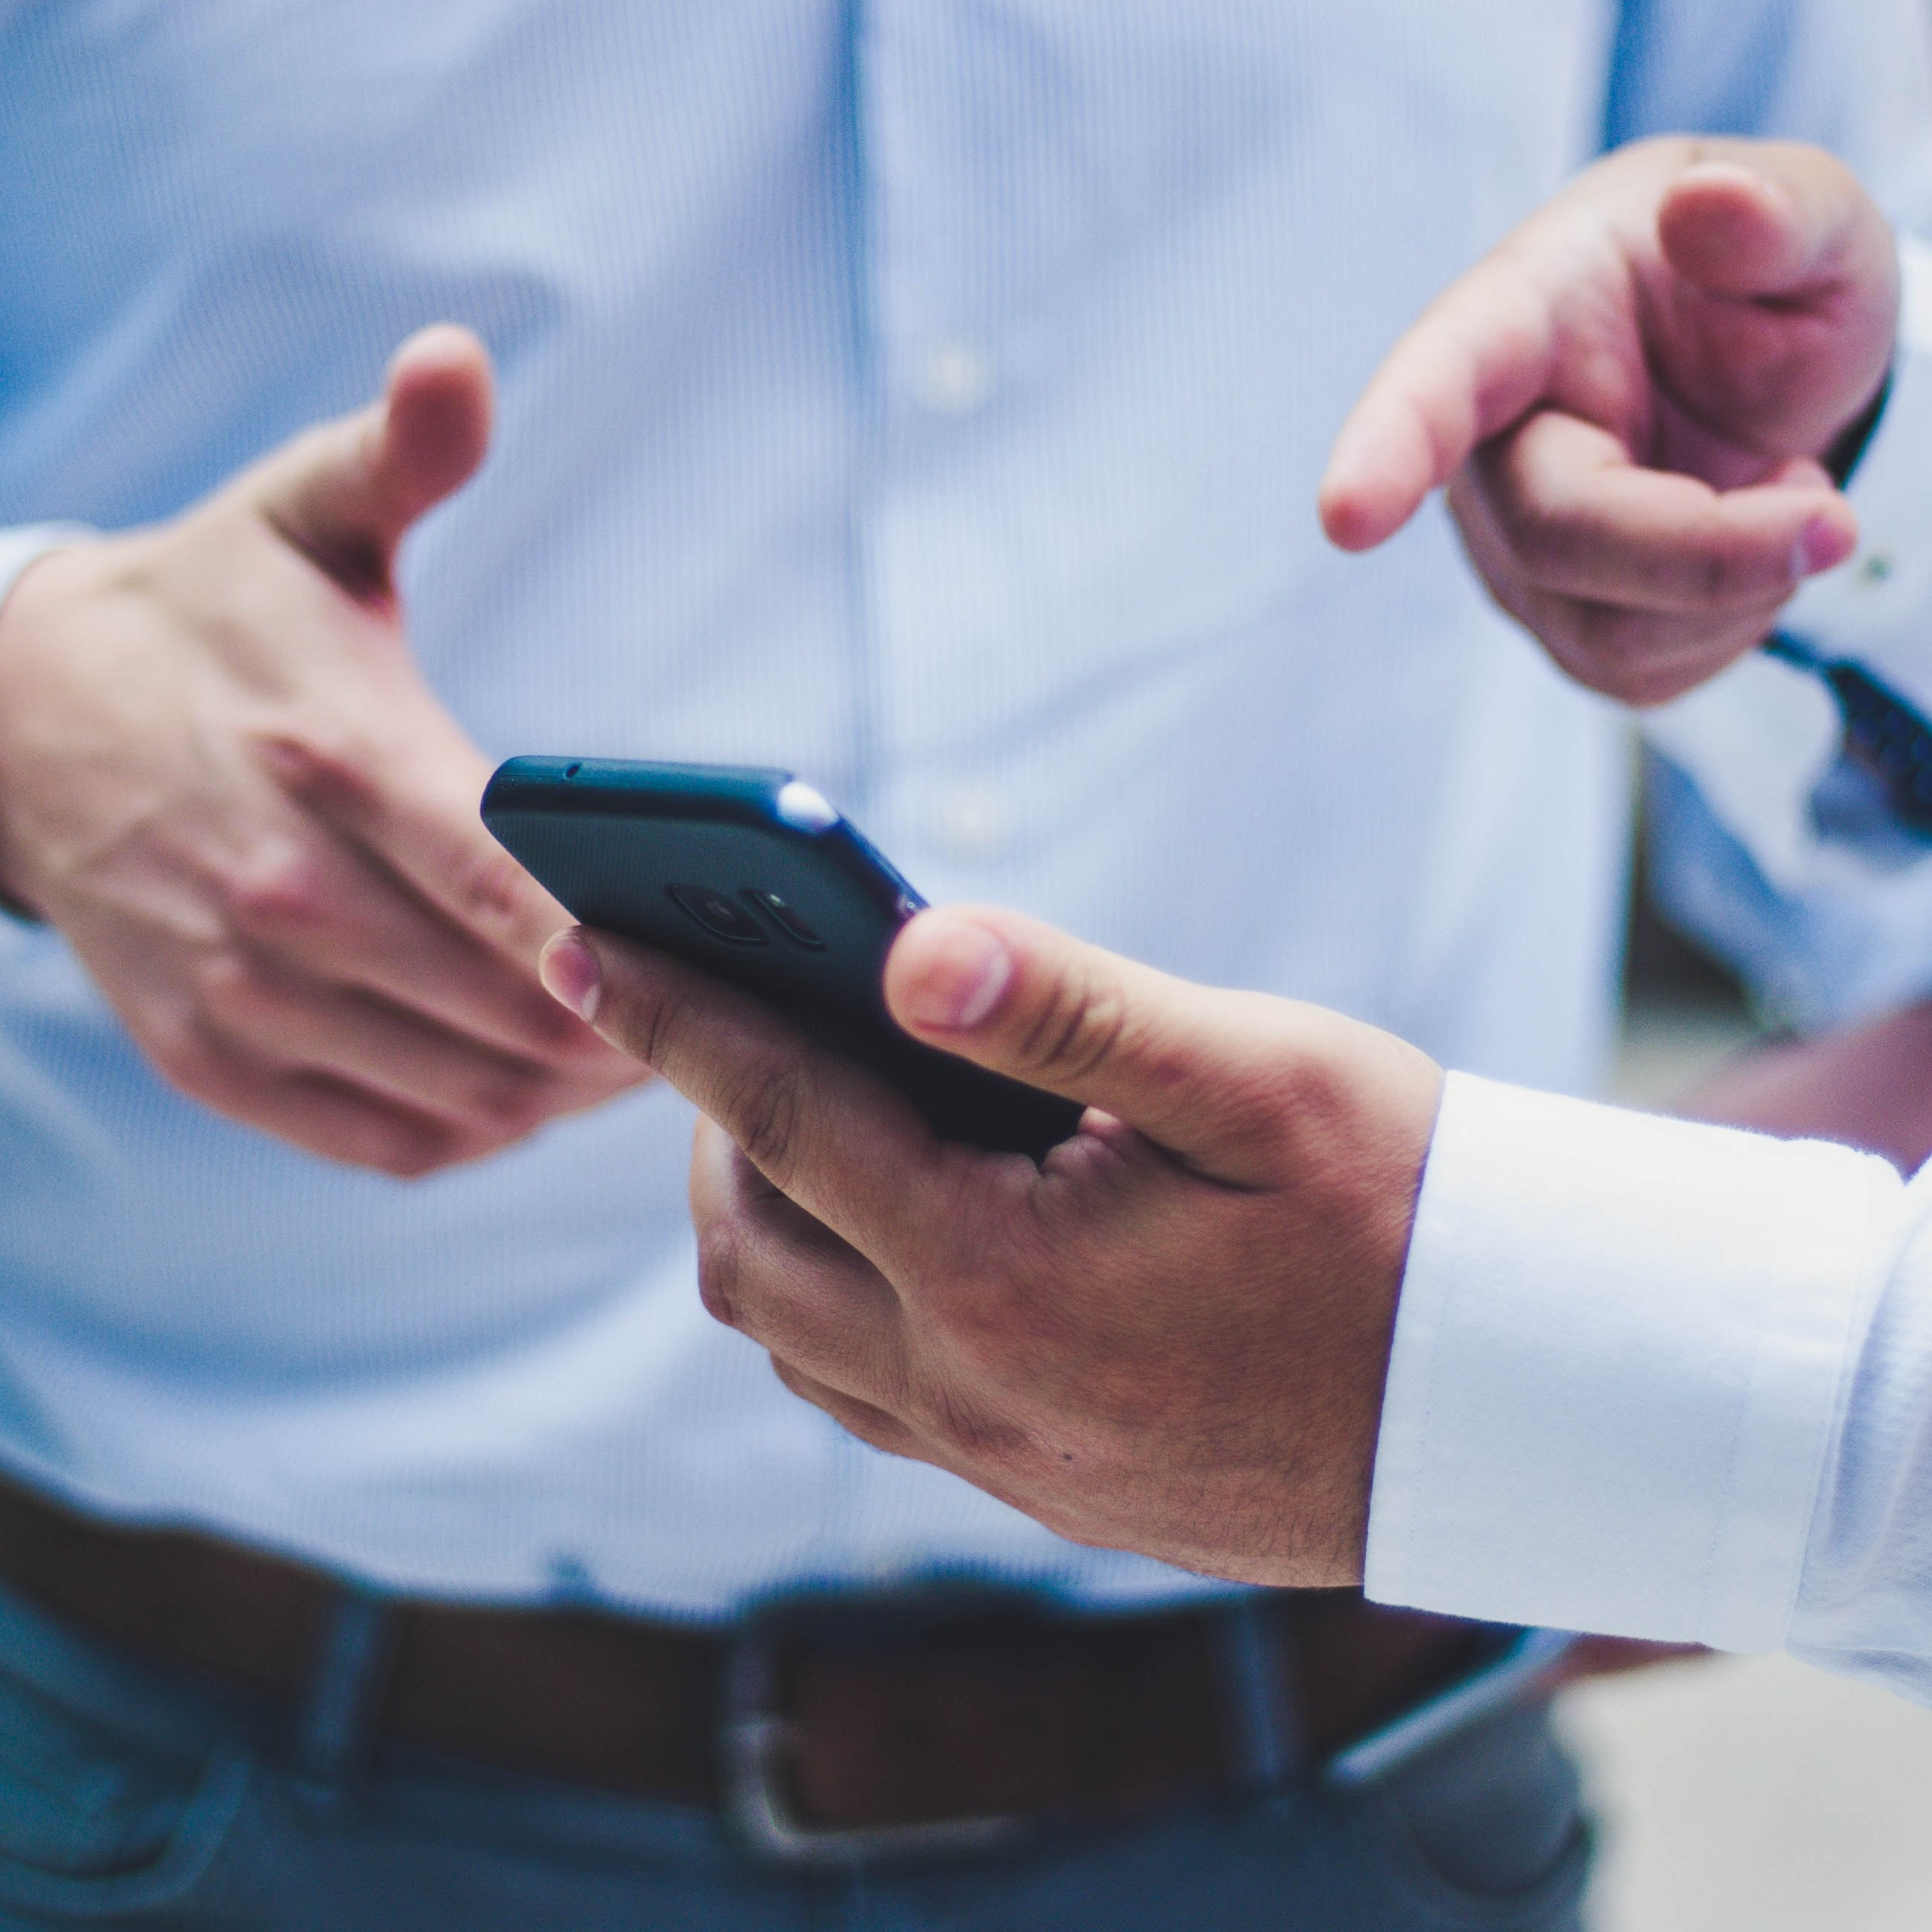 two men's hands pointing to a phone